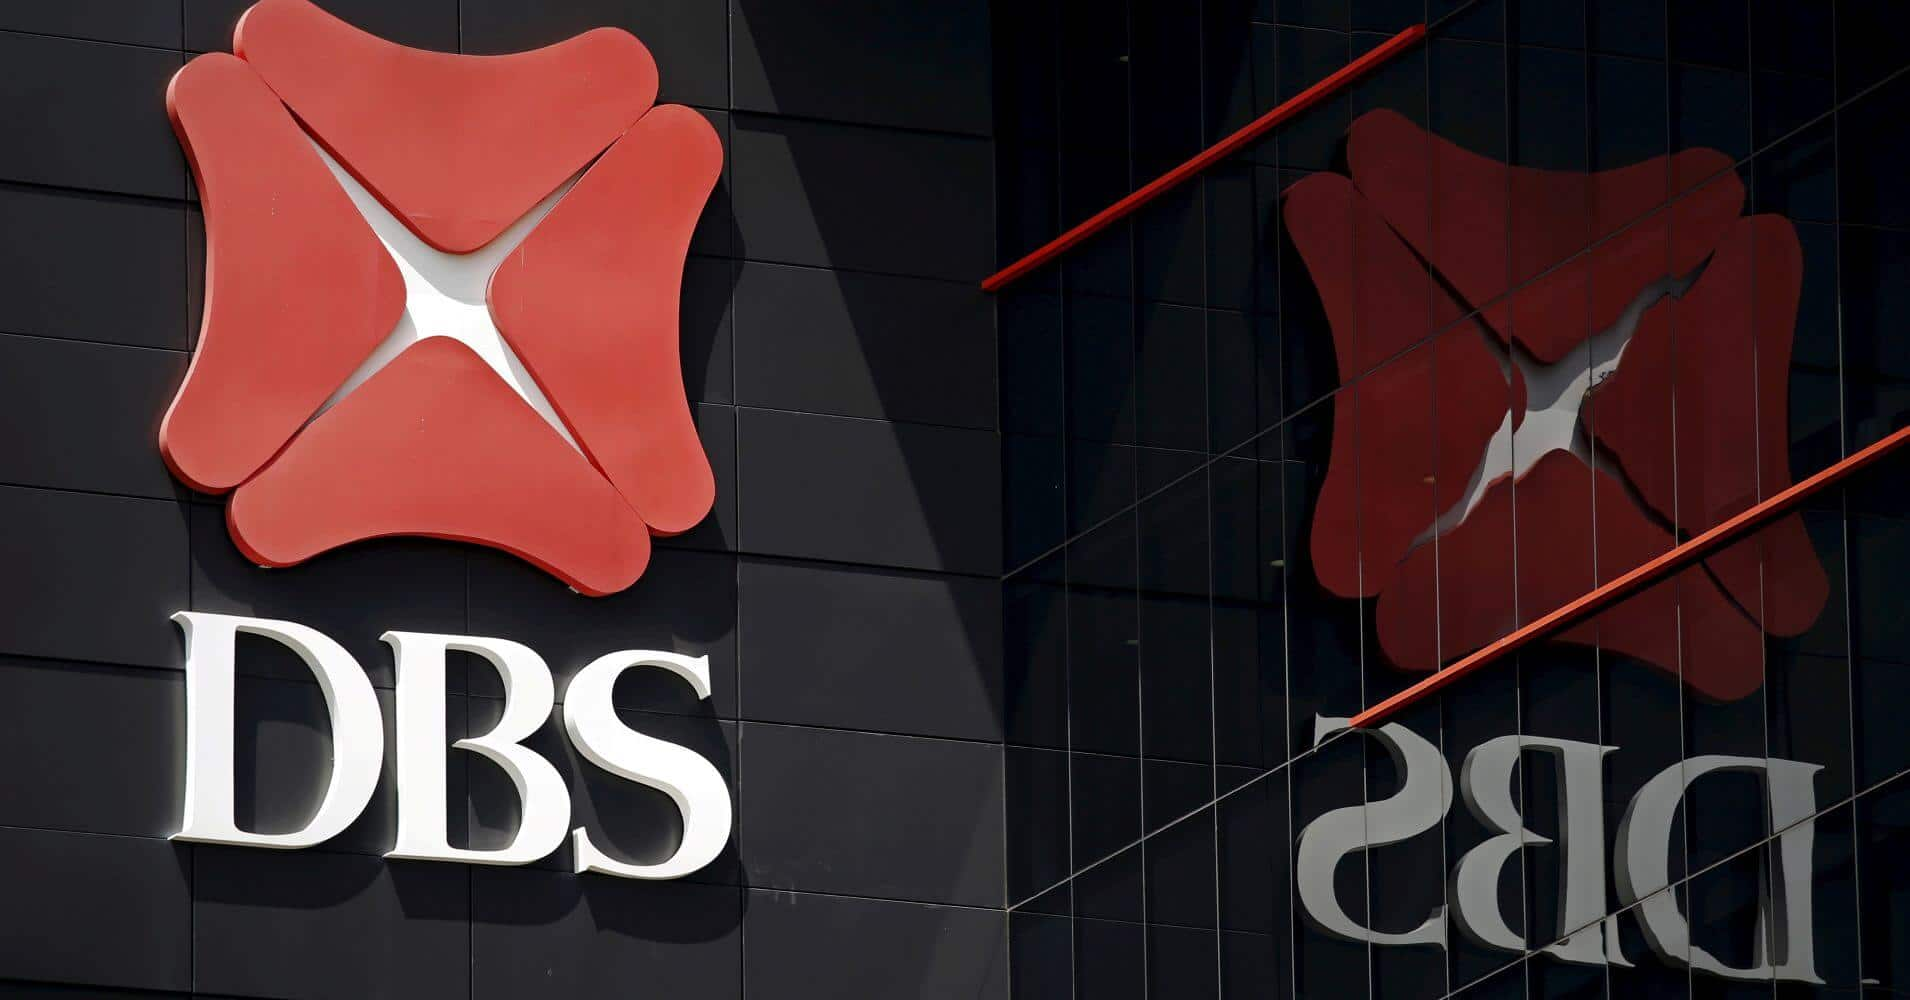 CEO of Singapore's DBS Group Holdings Says Asia has Mitigating Factors to Counter Global Slowdown